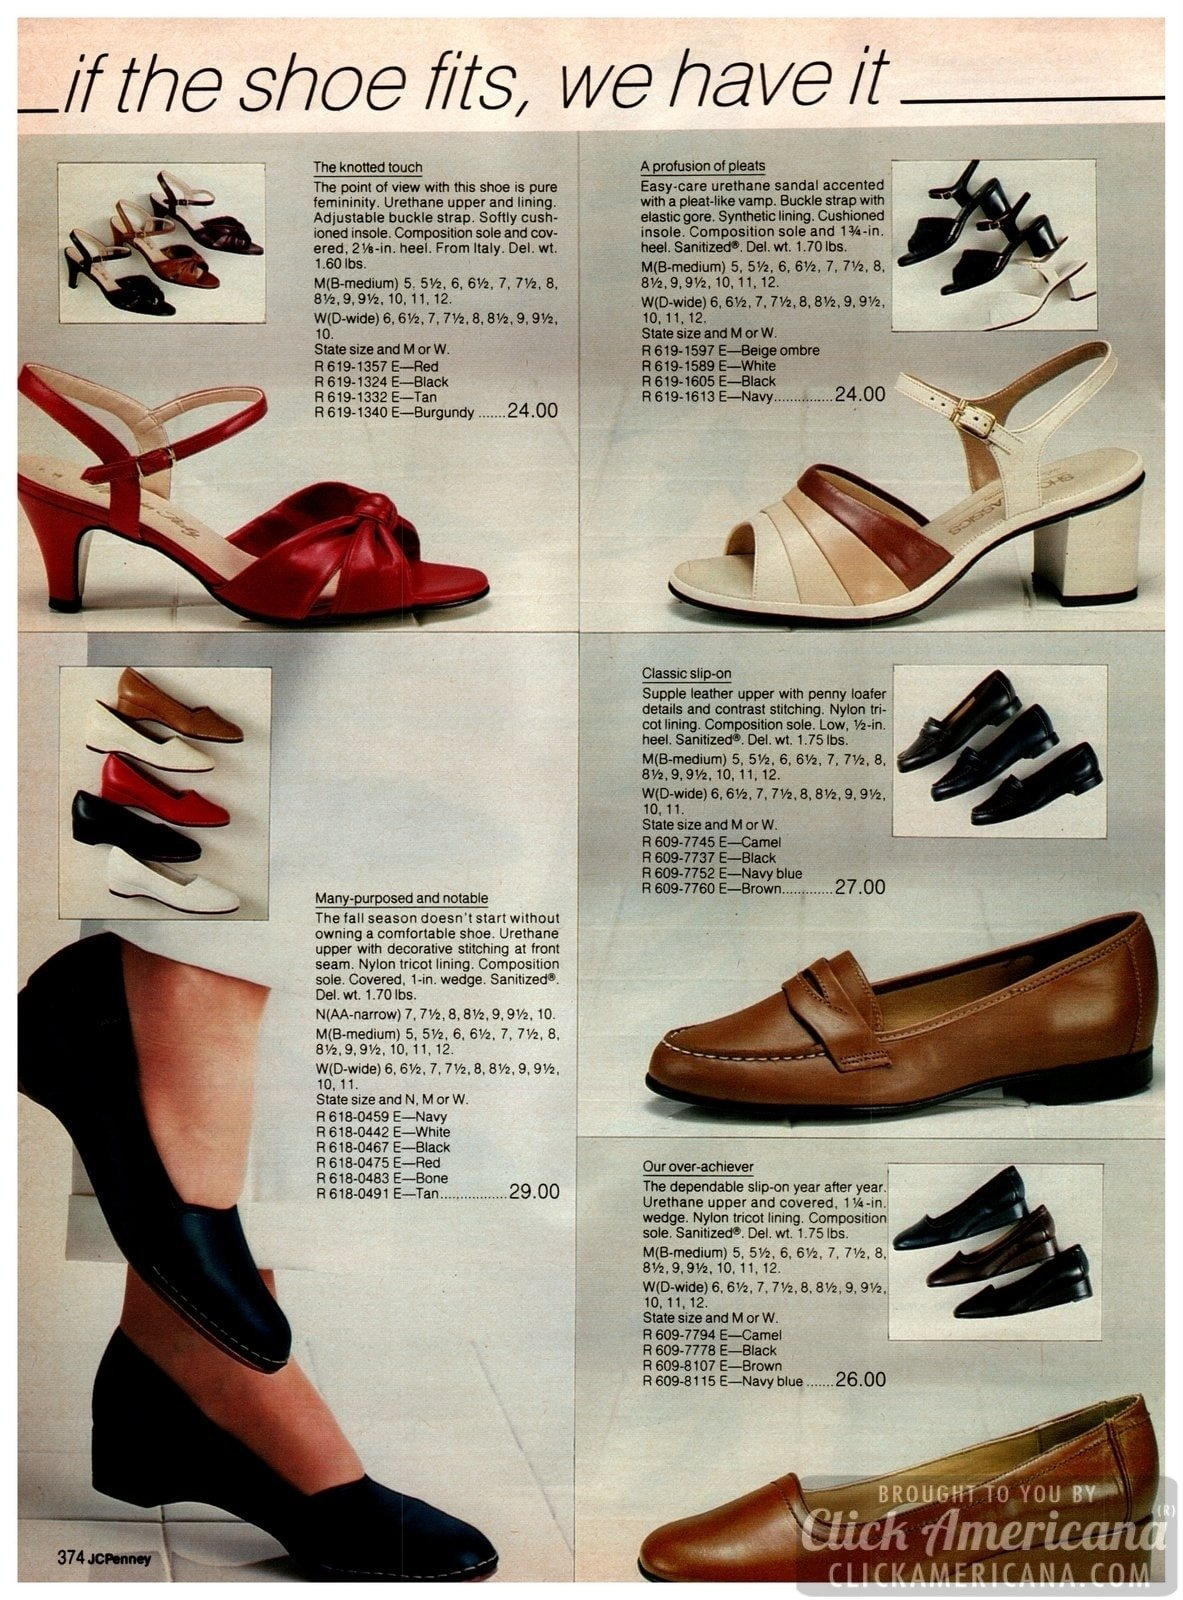 Strappy eighties shoes for ladies - square heels, strappy pumps, penny loafers, flats and other stylish soles